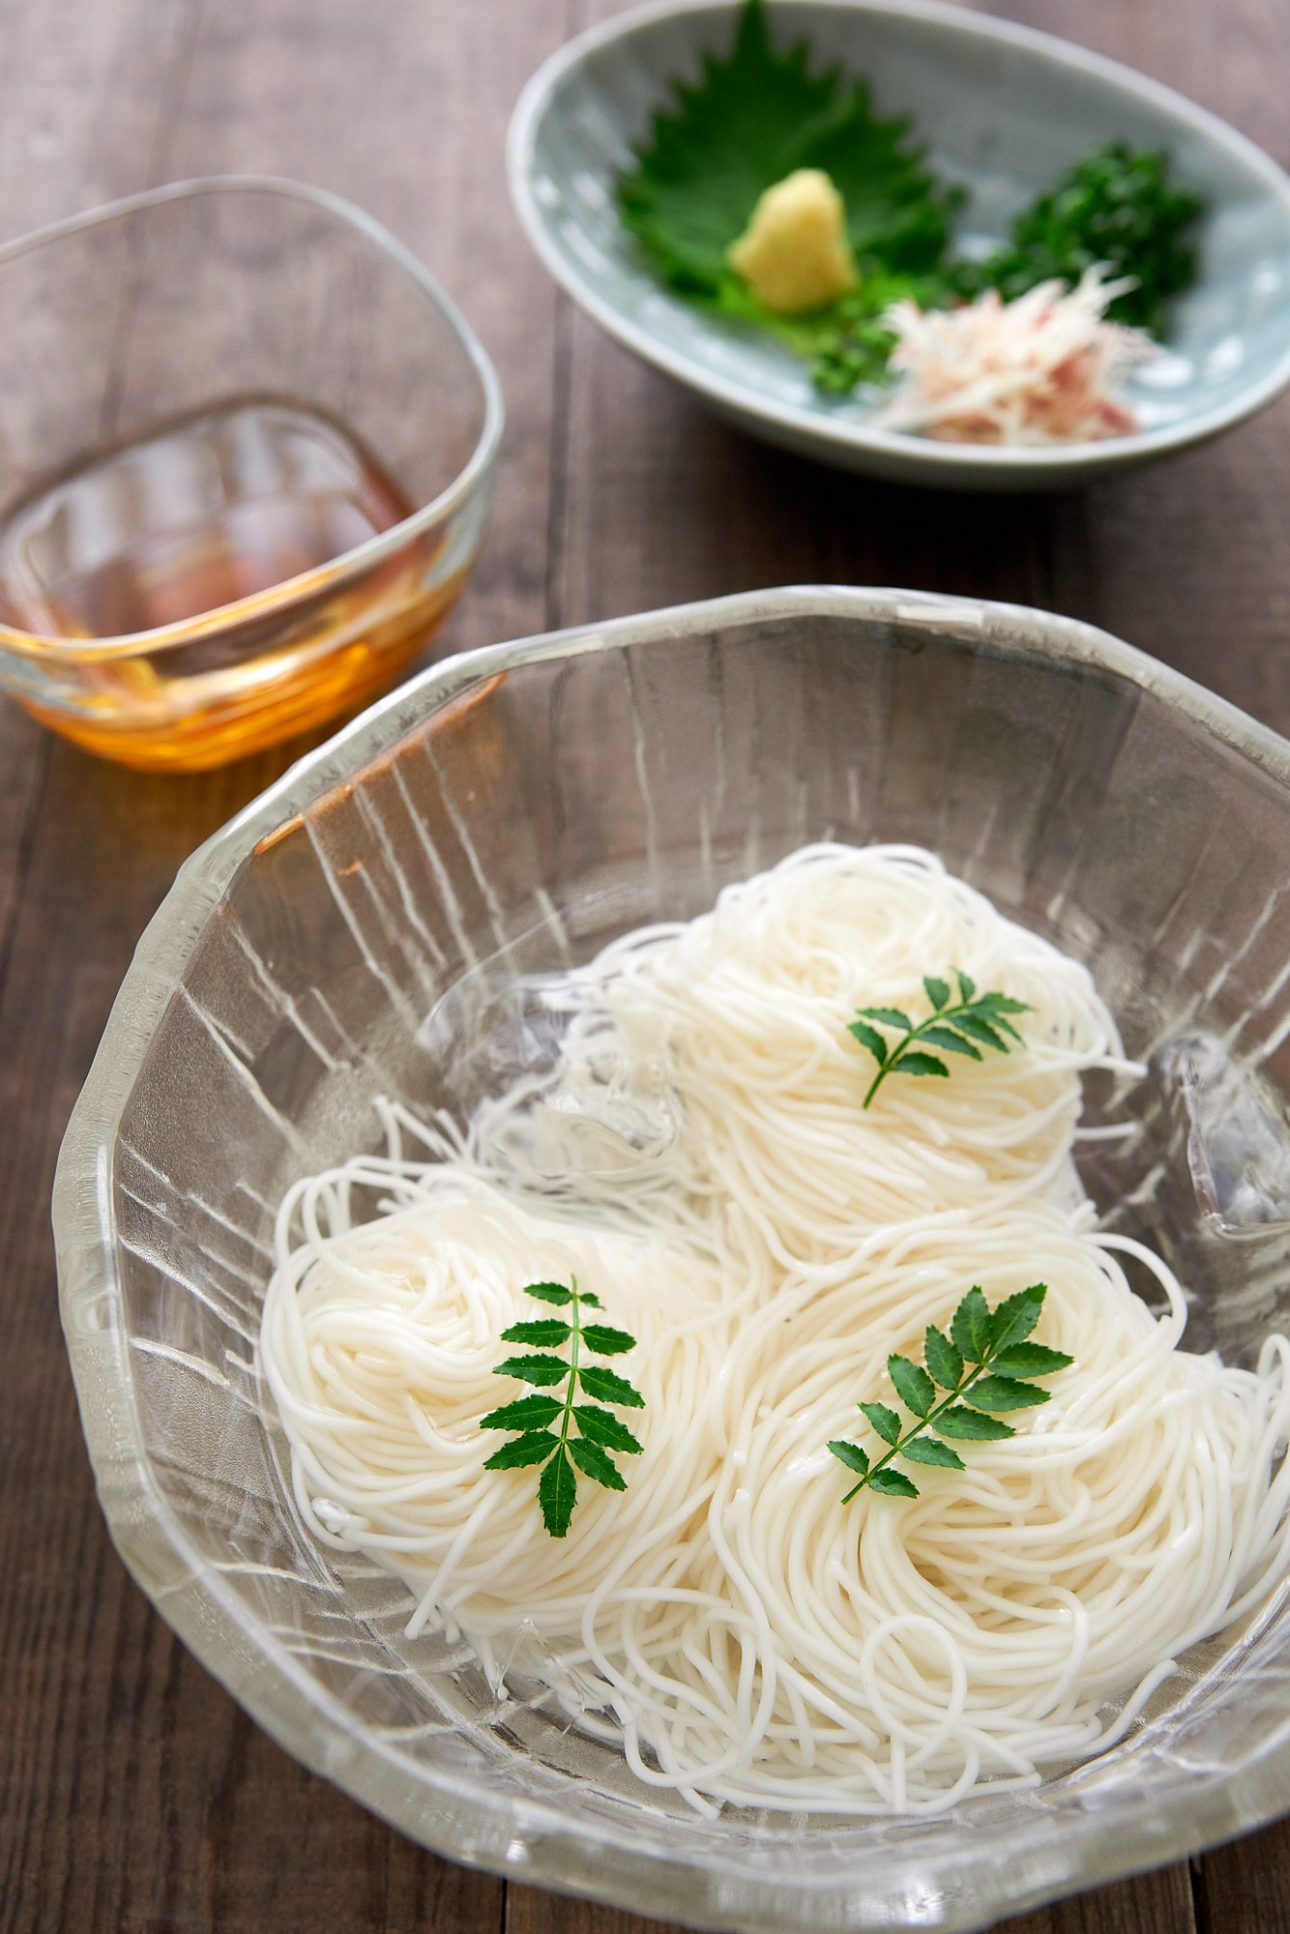 Nothing says summer in Japan like Somen noodles floating in a bowl of ice water. Easy and quick, this summer dish and dipping sauce comes together in less than 5 minutes.